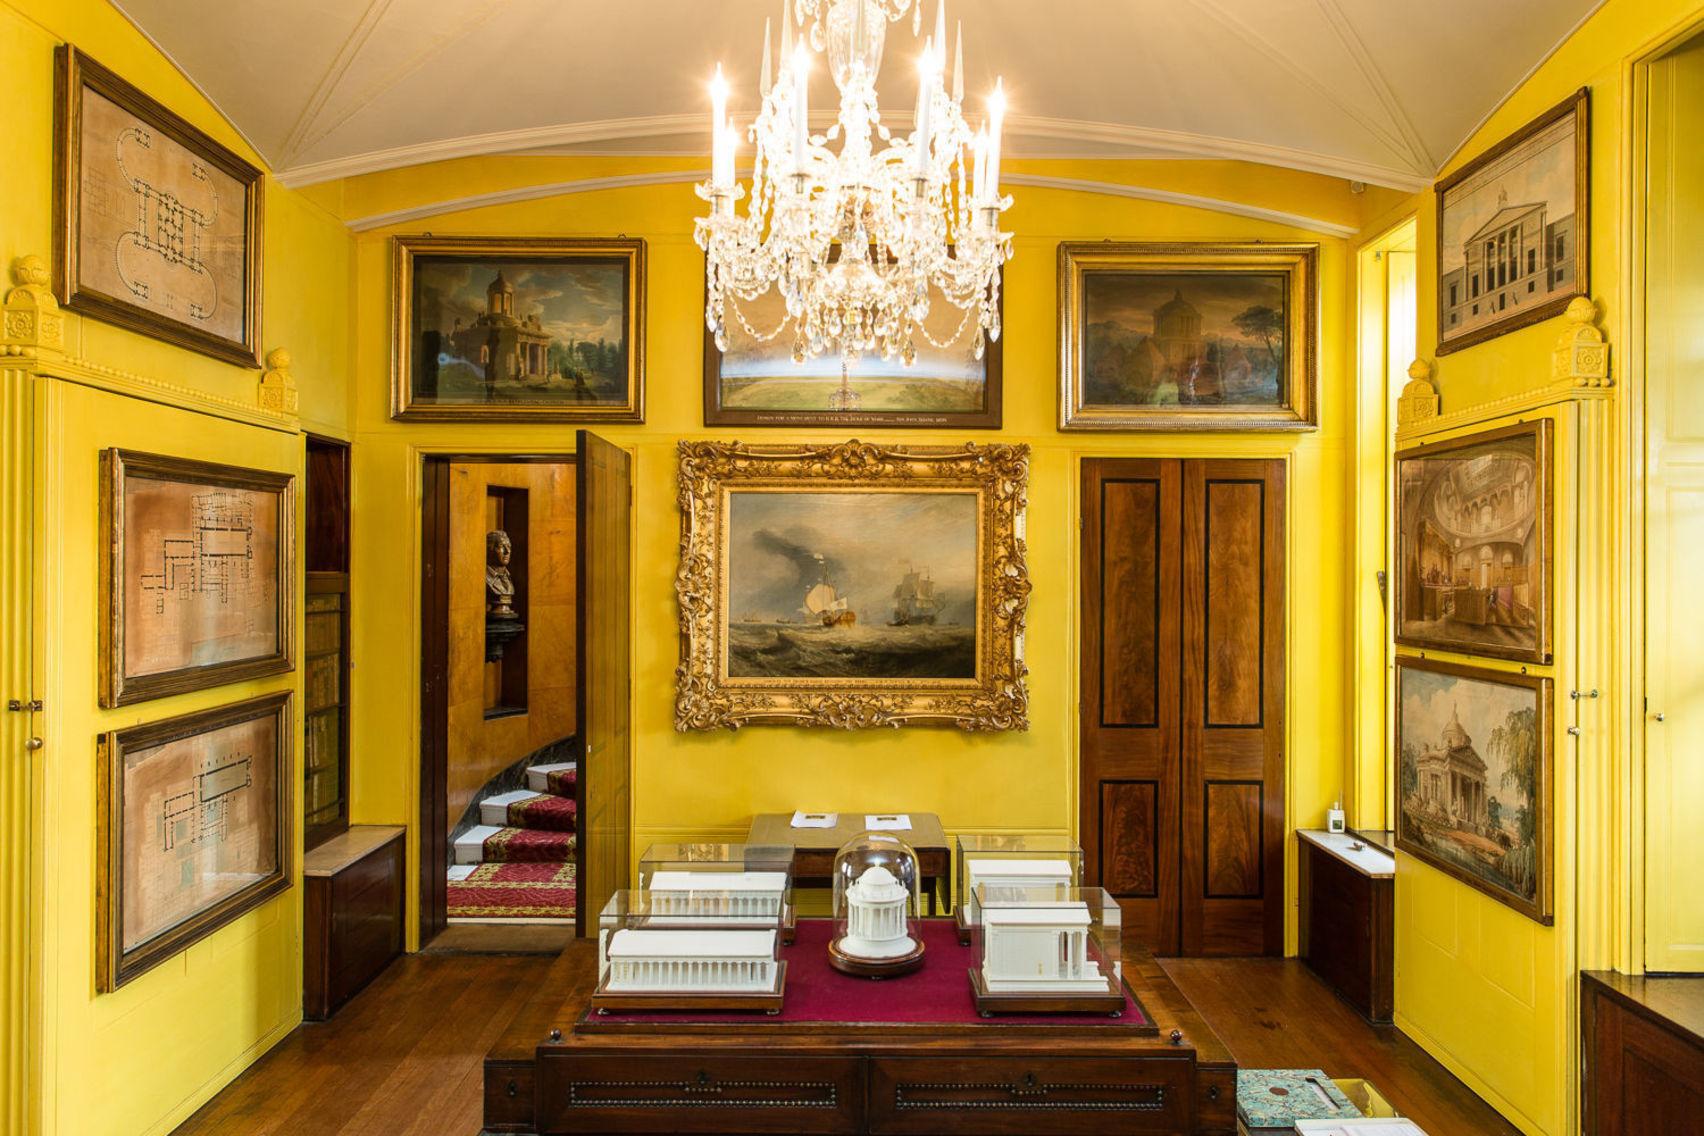 A yellow room with oil paintings on the walls and a large chandelier